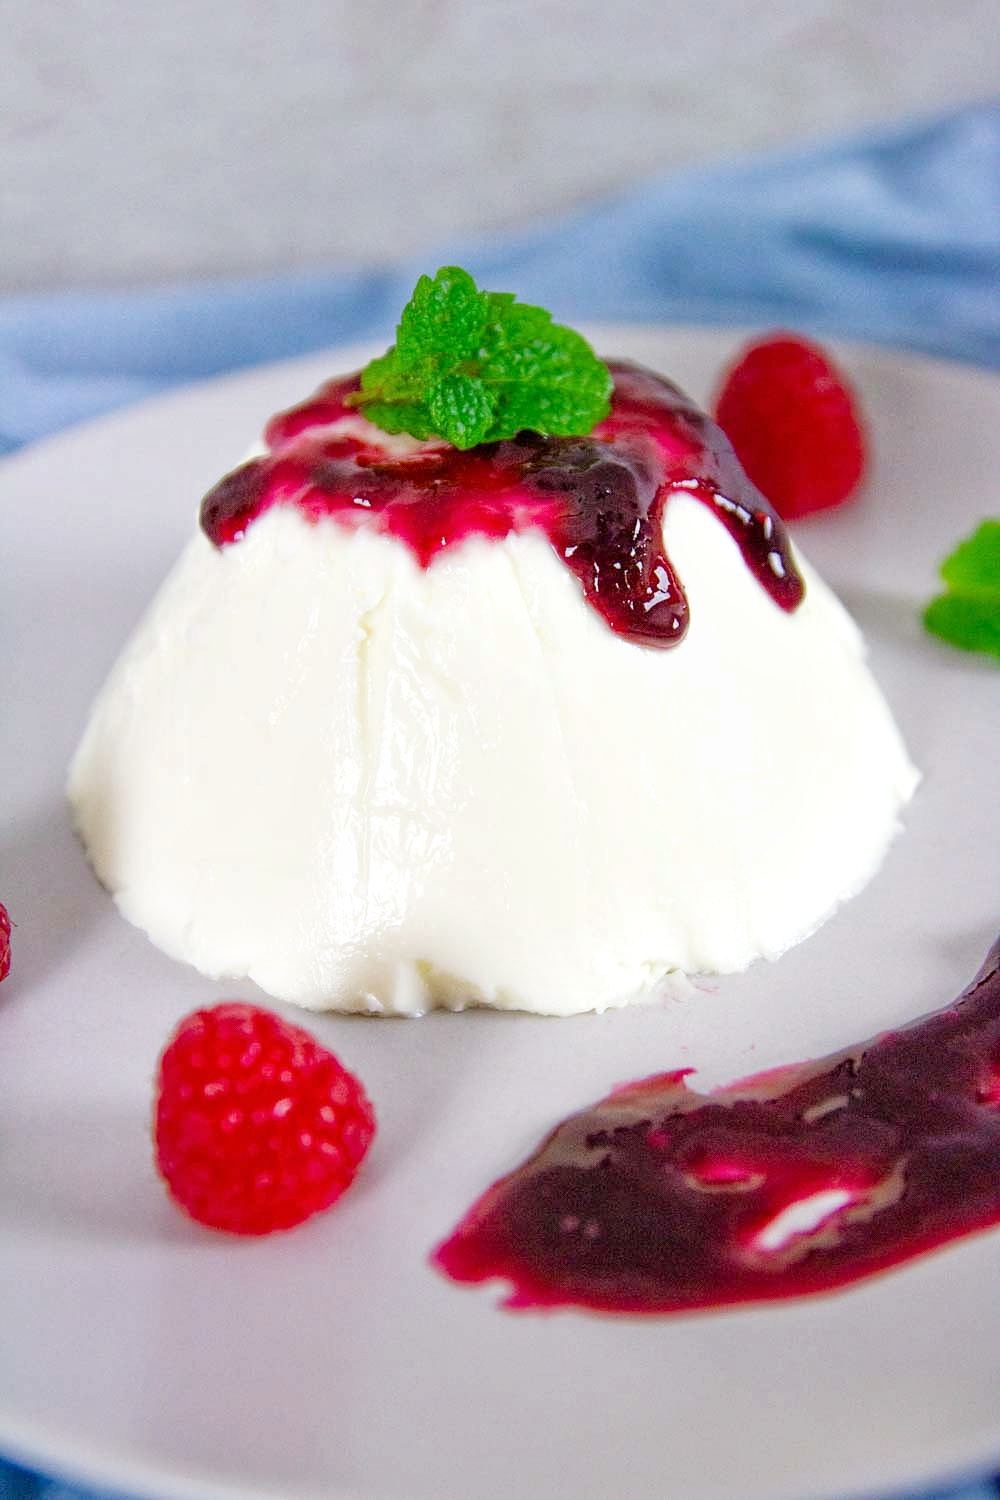 Easy Keto Vanilla Panna Cotta recipe it's an elegant, creamy, and delicious Italian dessert, and perfect for any celebration like Mother's Day...